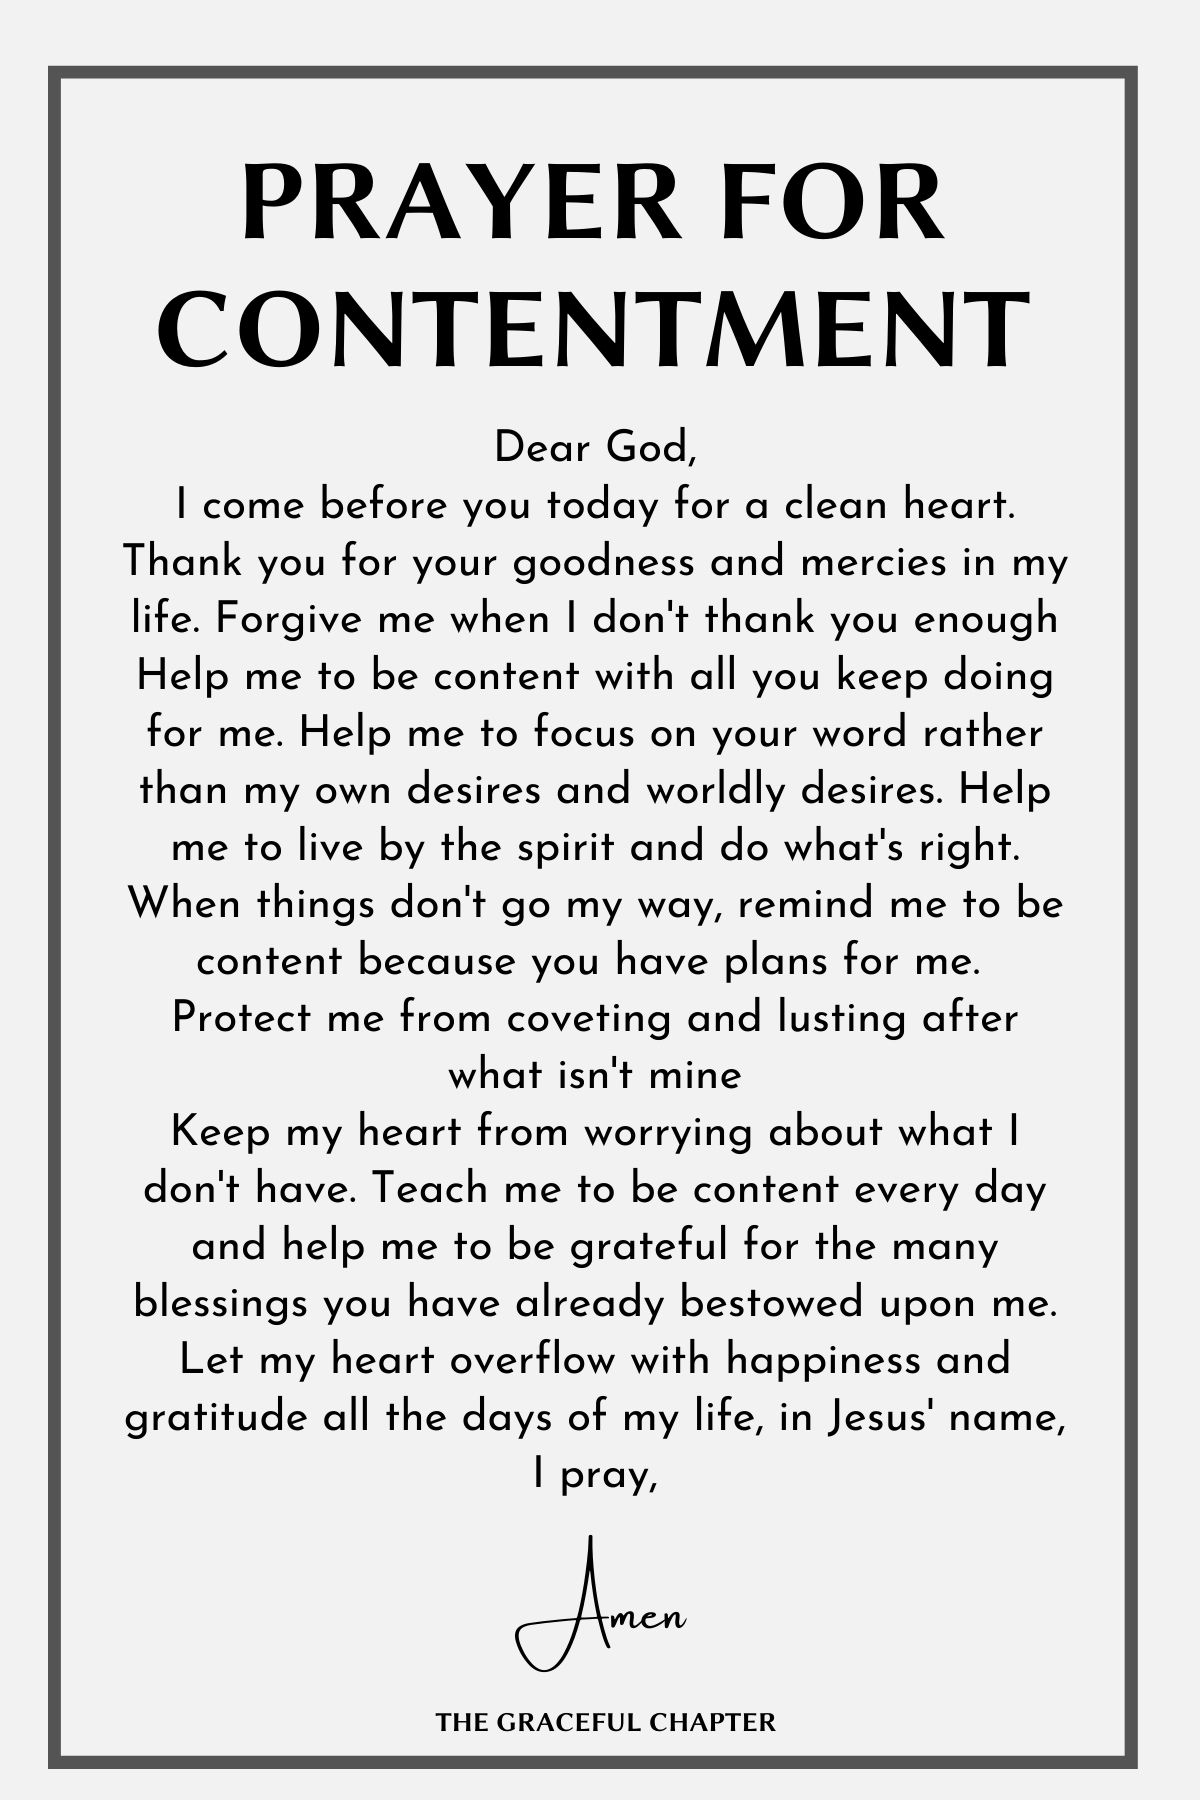 Prayer for contentment - content prayer